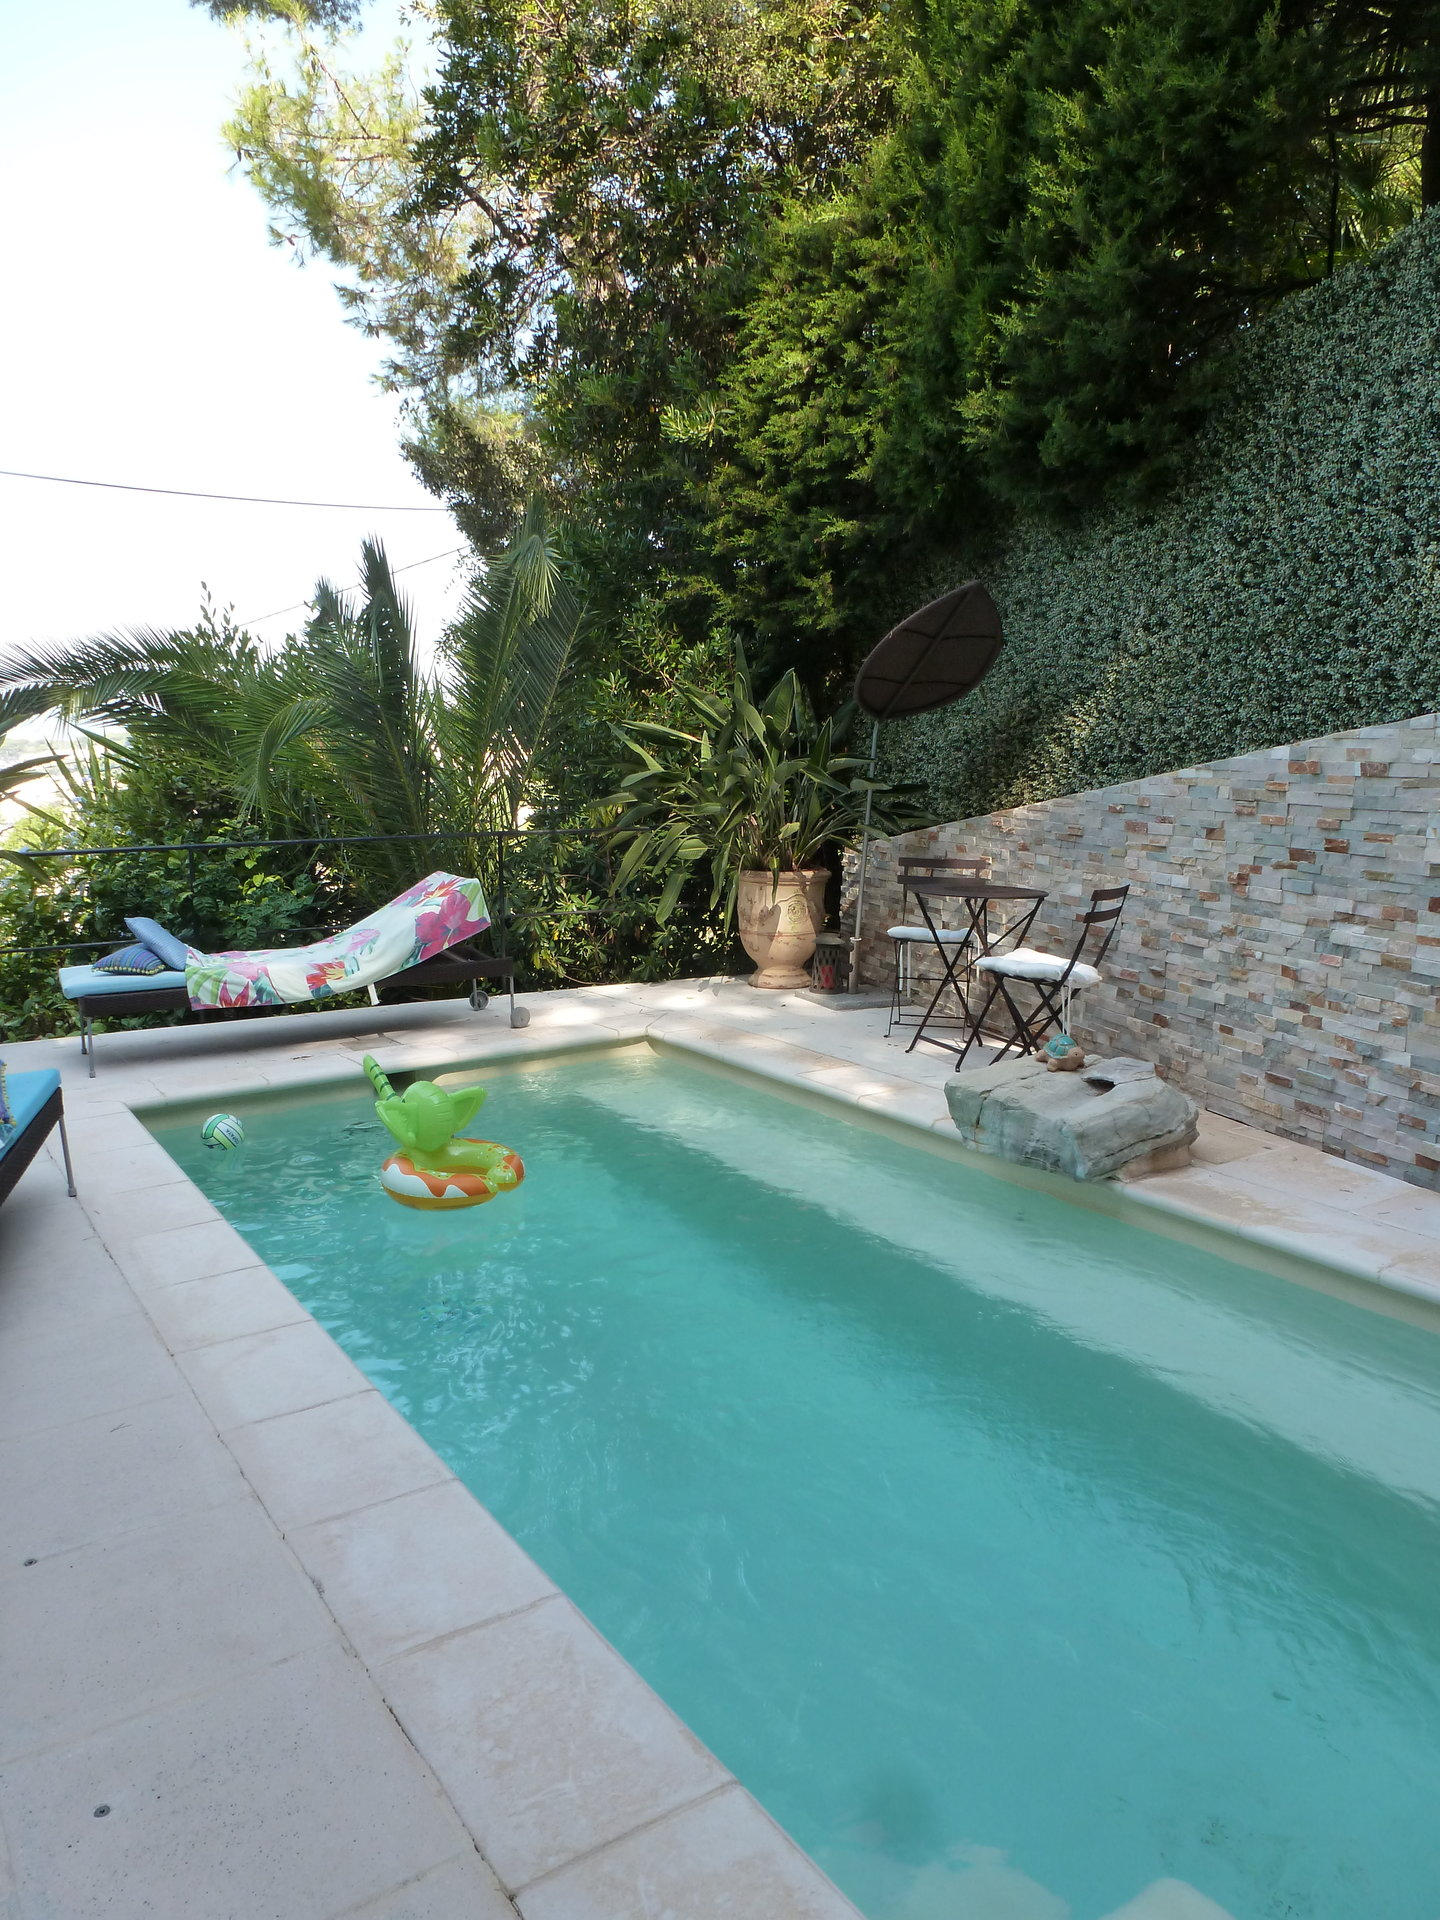 LE CANNET - VILLA WITH SWIMMING POOL